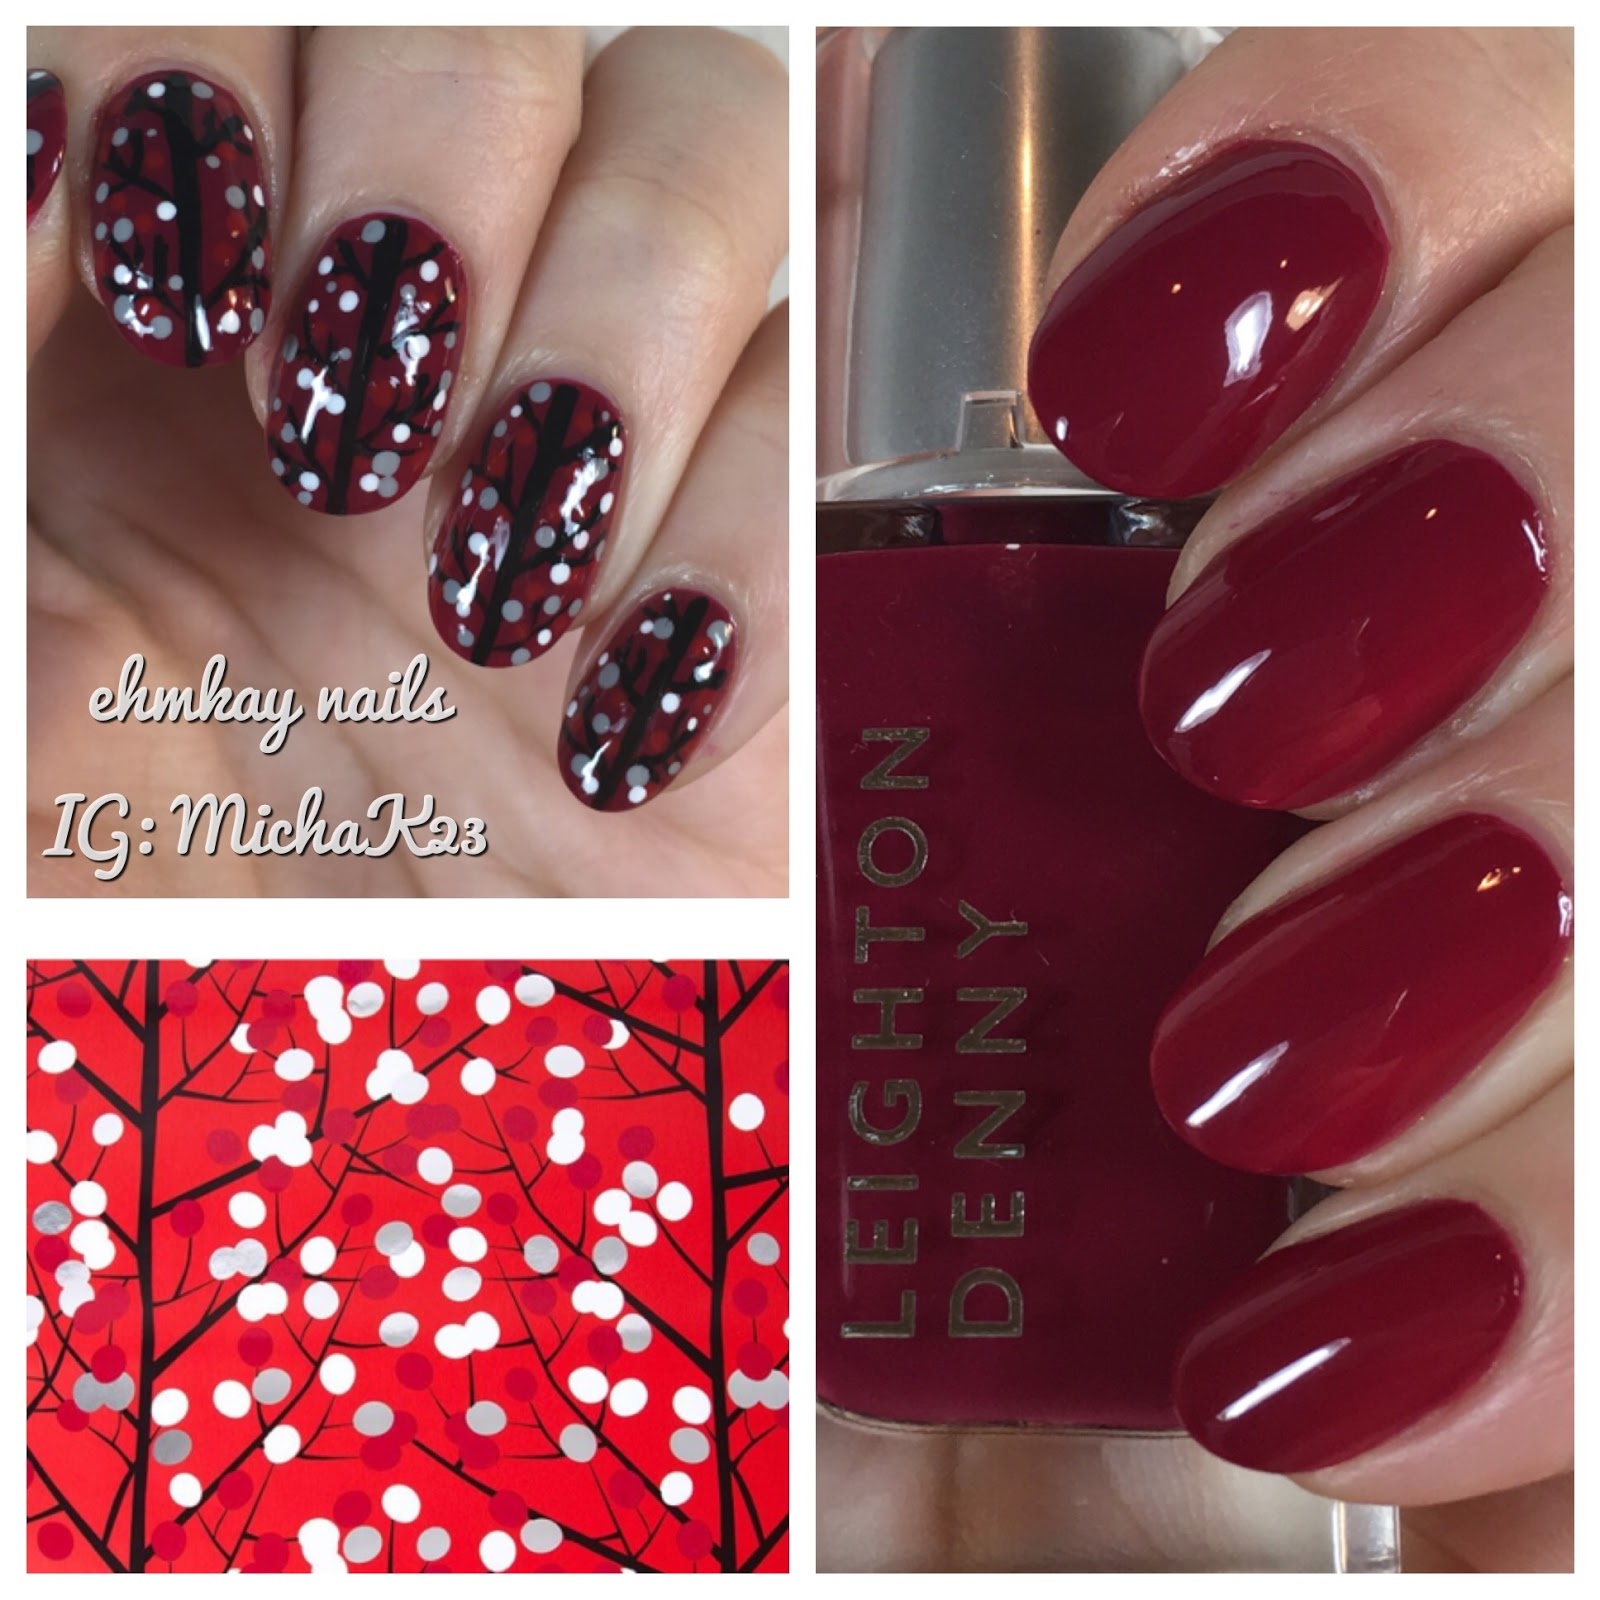 ehmkay nails: Winter Berries Nail Art with Leighton Denny Pillow ...